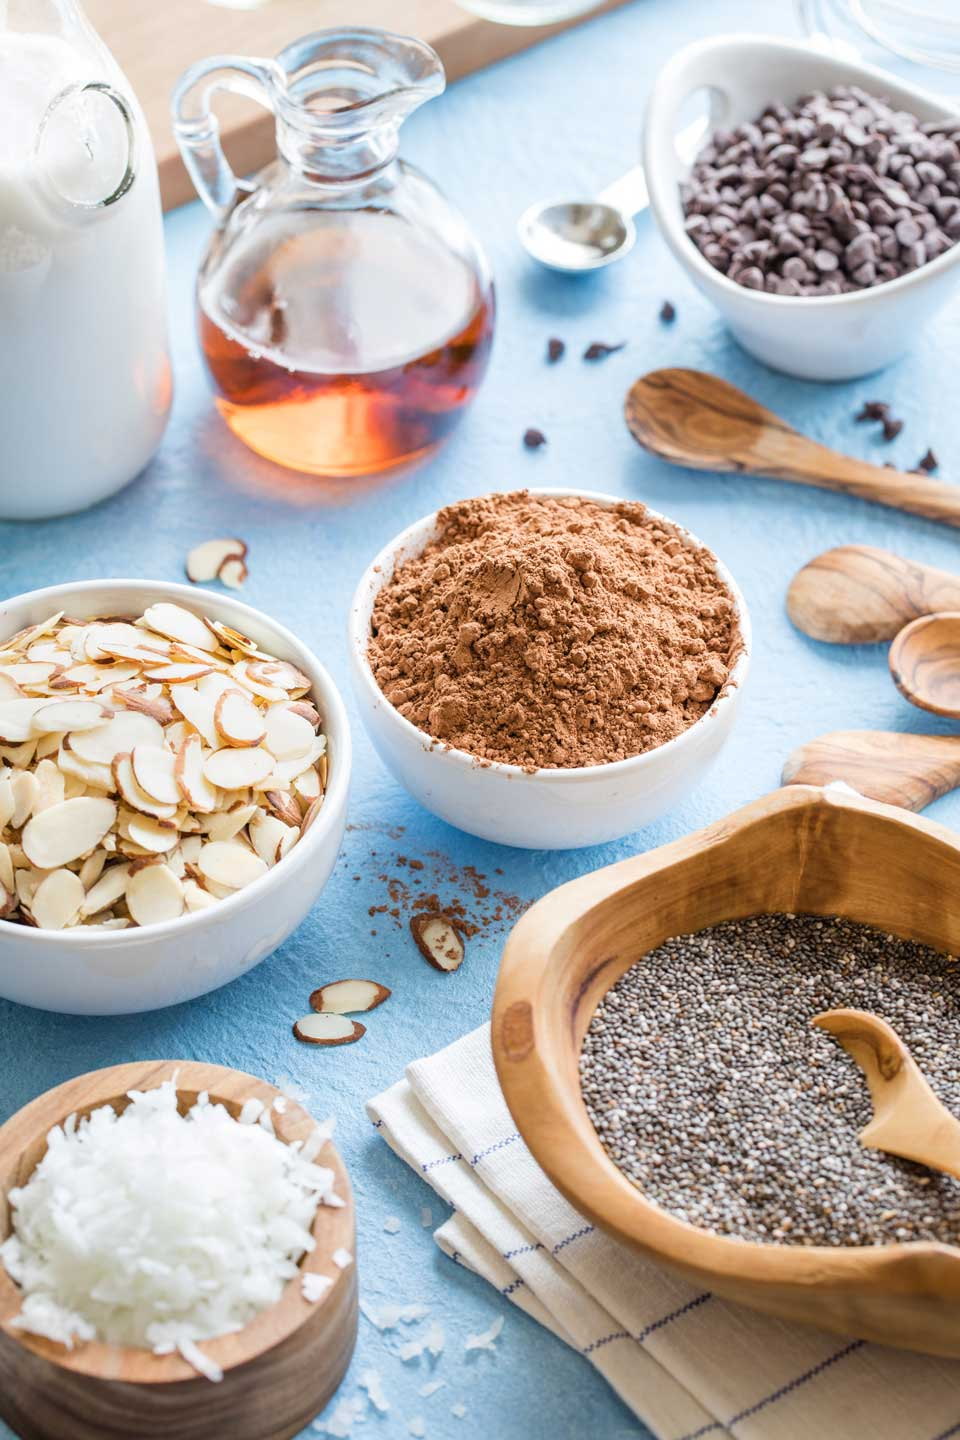 Ingredients to make the recipe - chocolate chips, chia seeds, cocoa powder, coconut, almonds, etc. - arranged in little bowls.